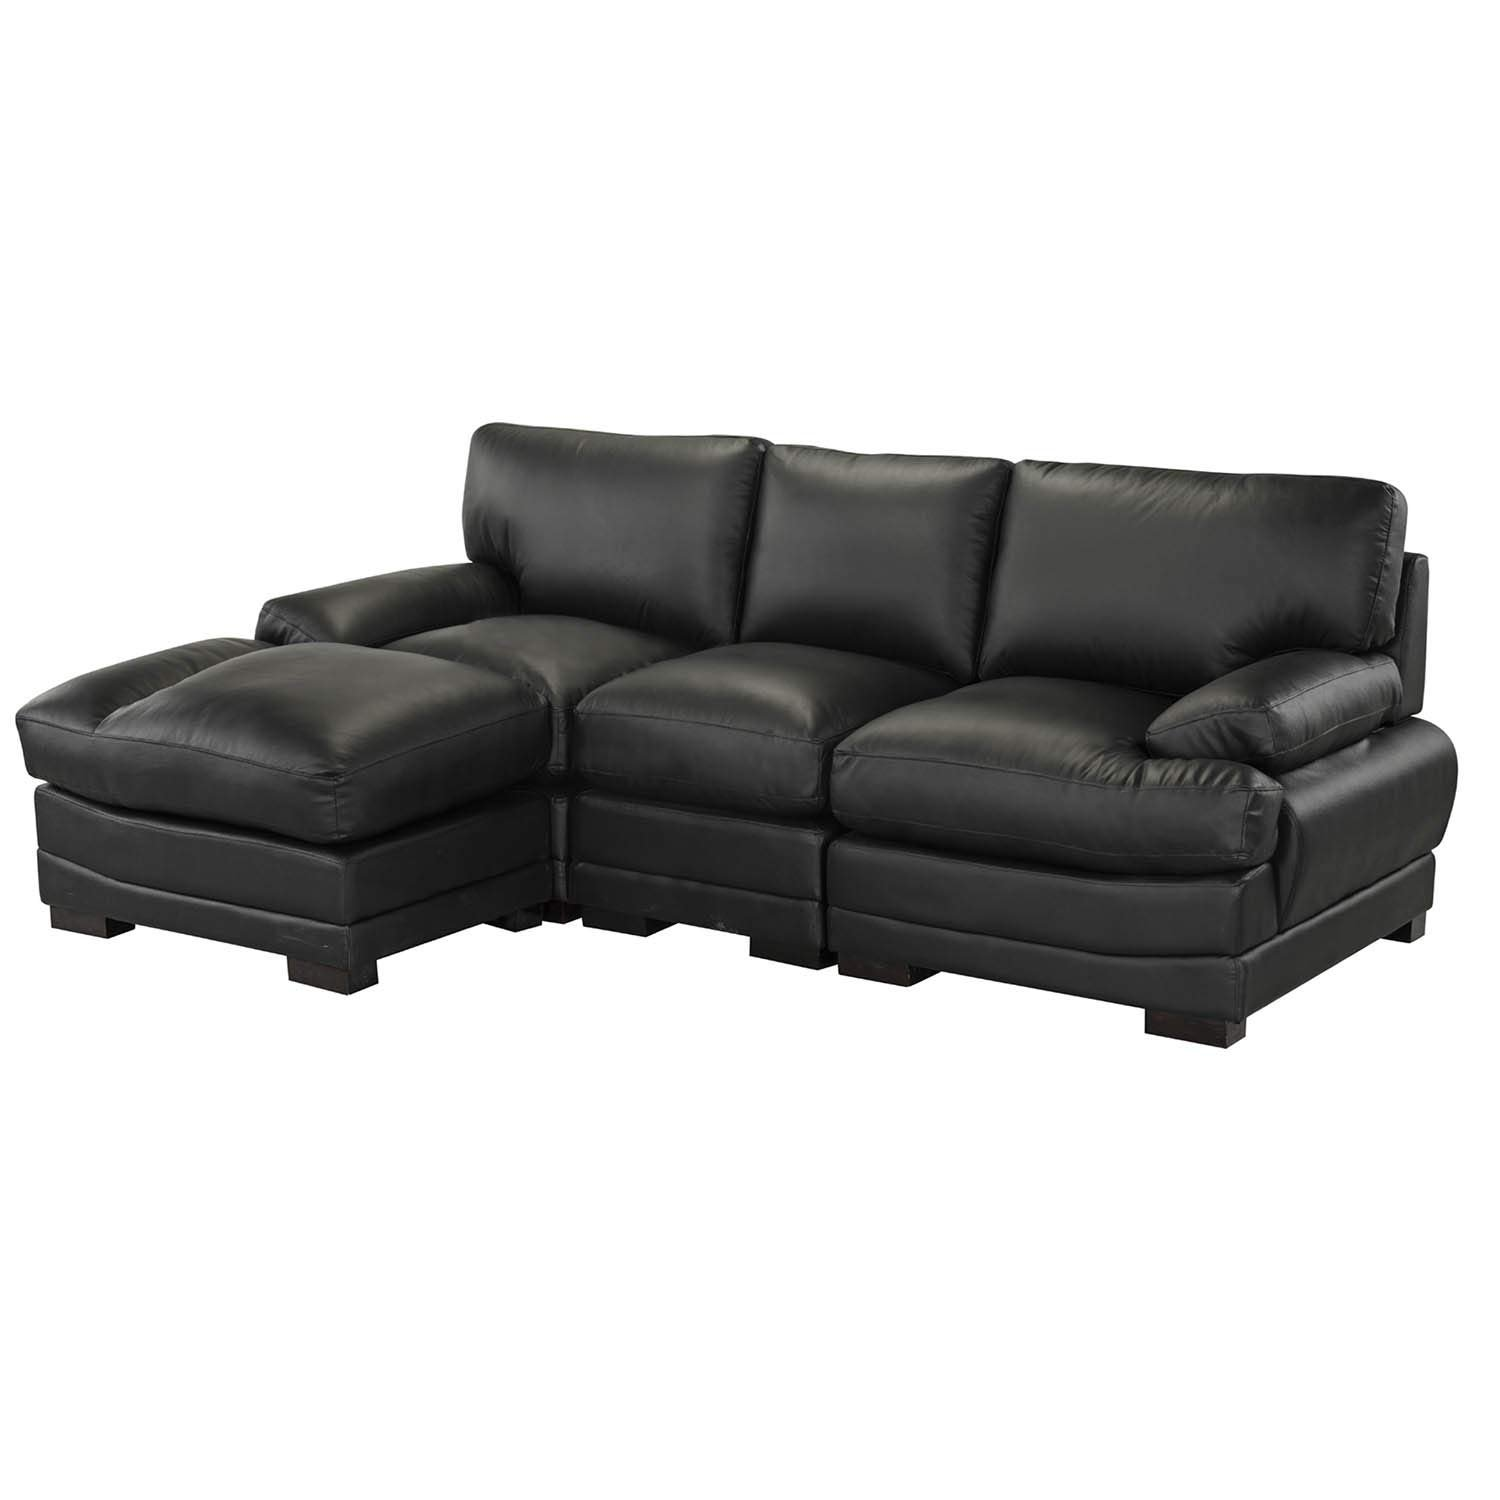 Swell Details About Black Leather Match Sectional Sofa L Shape Modern Left Facing Chaise Lounge Caraccident5 Cool Chair Designs And Ideas Caraccident5Info